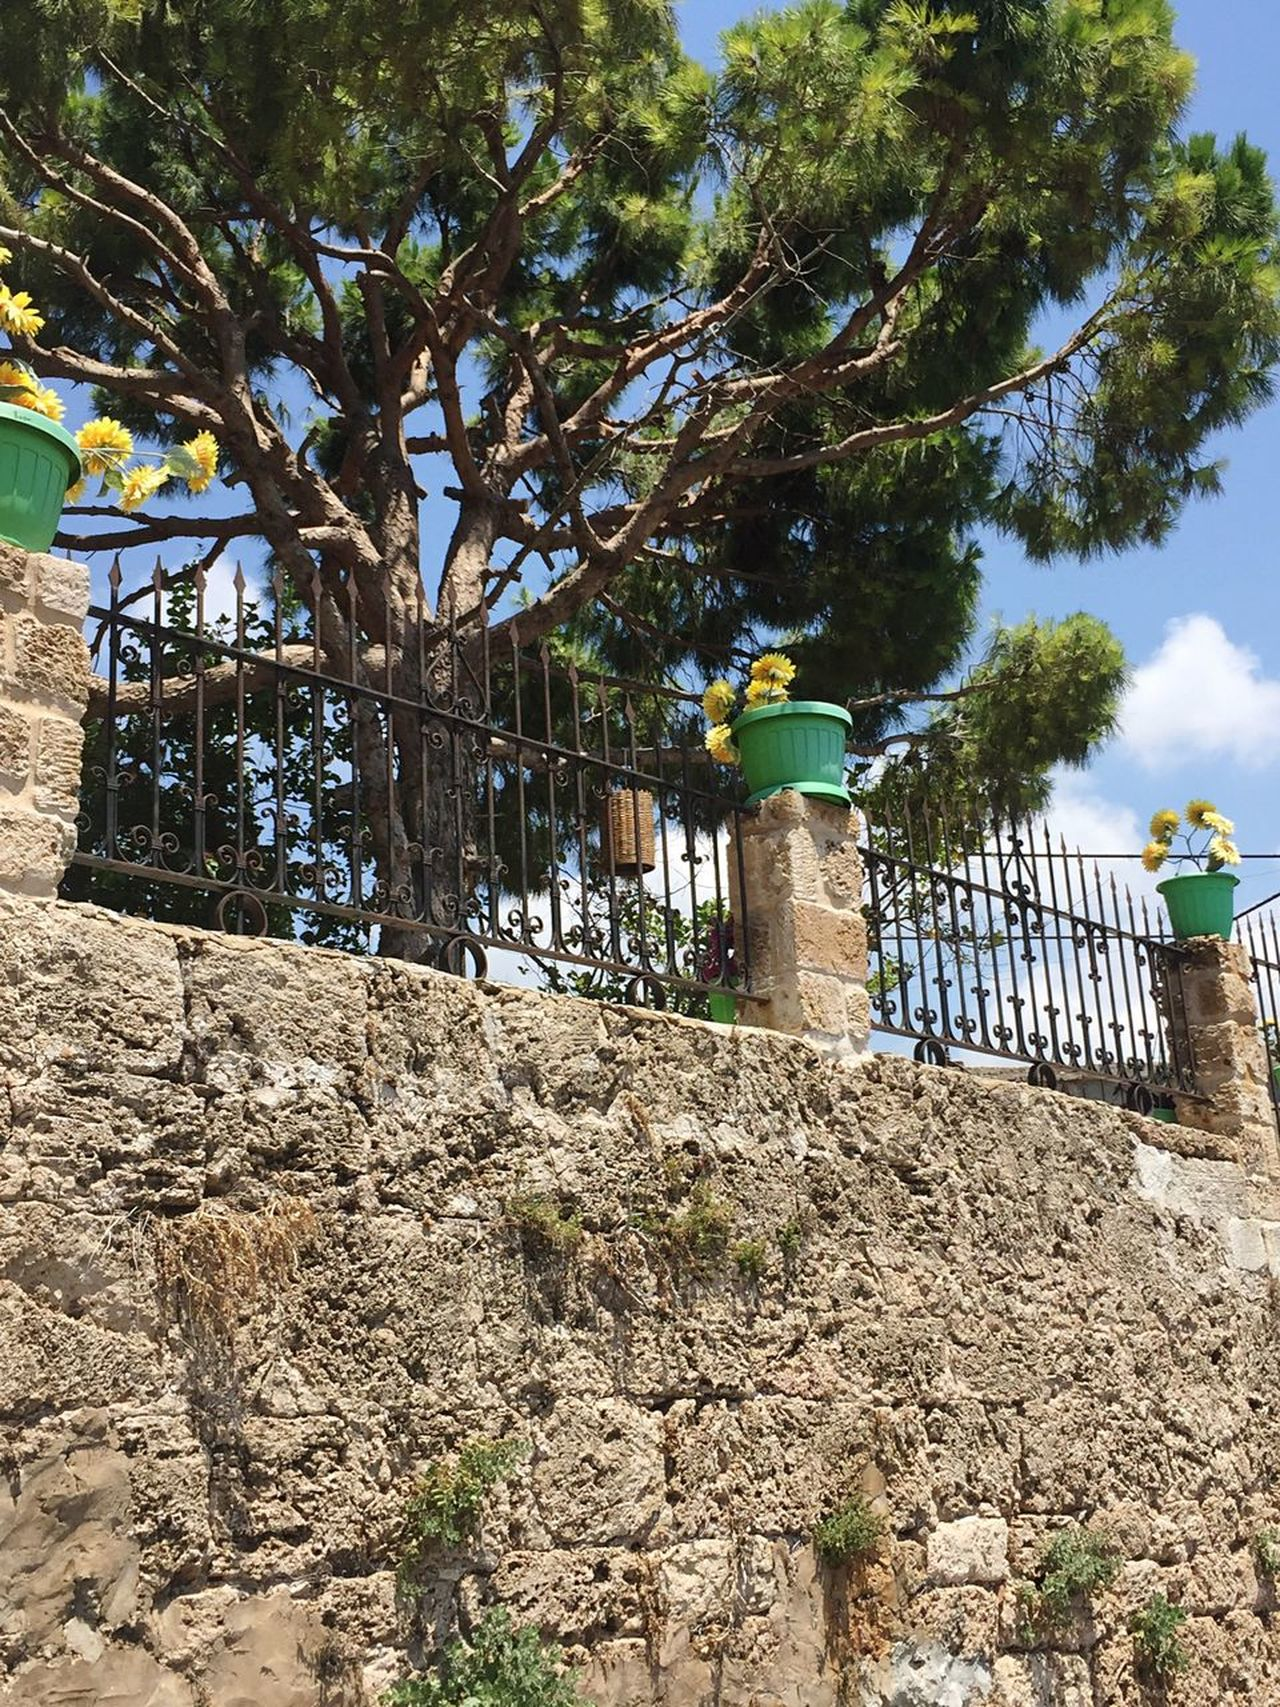 Stone Wall Hidden Places Wrought Iron Pine Tree East Mediterranean Railing Flower Pots Yellow Flowers Tree Day Outdoors No People Built Structure Architecture Sky Nature Ancient Civilization Summer ☀ Byblos Lebanon